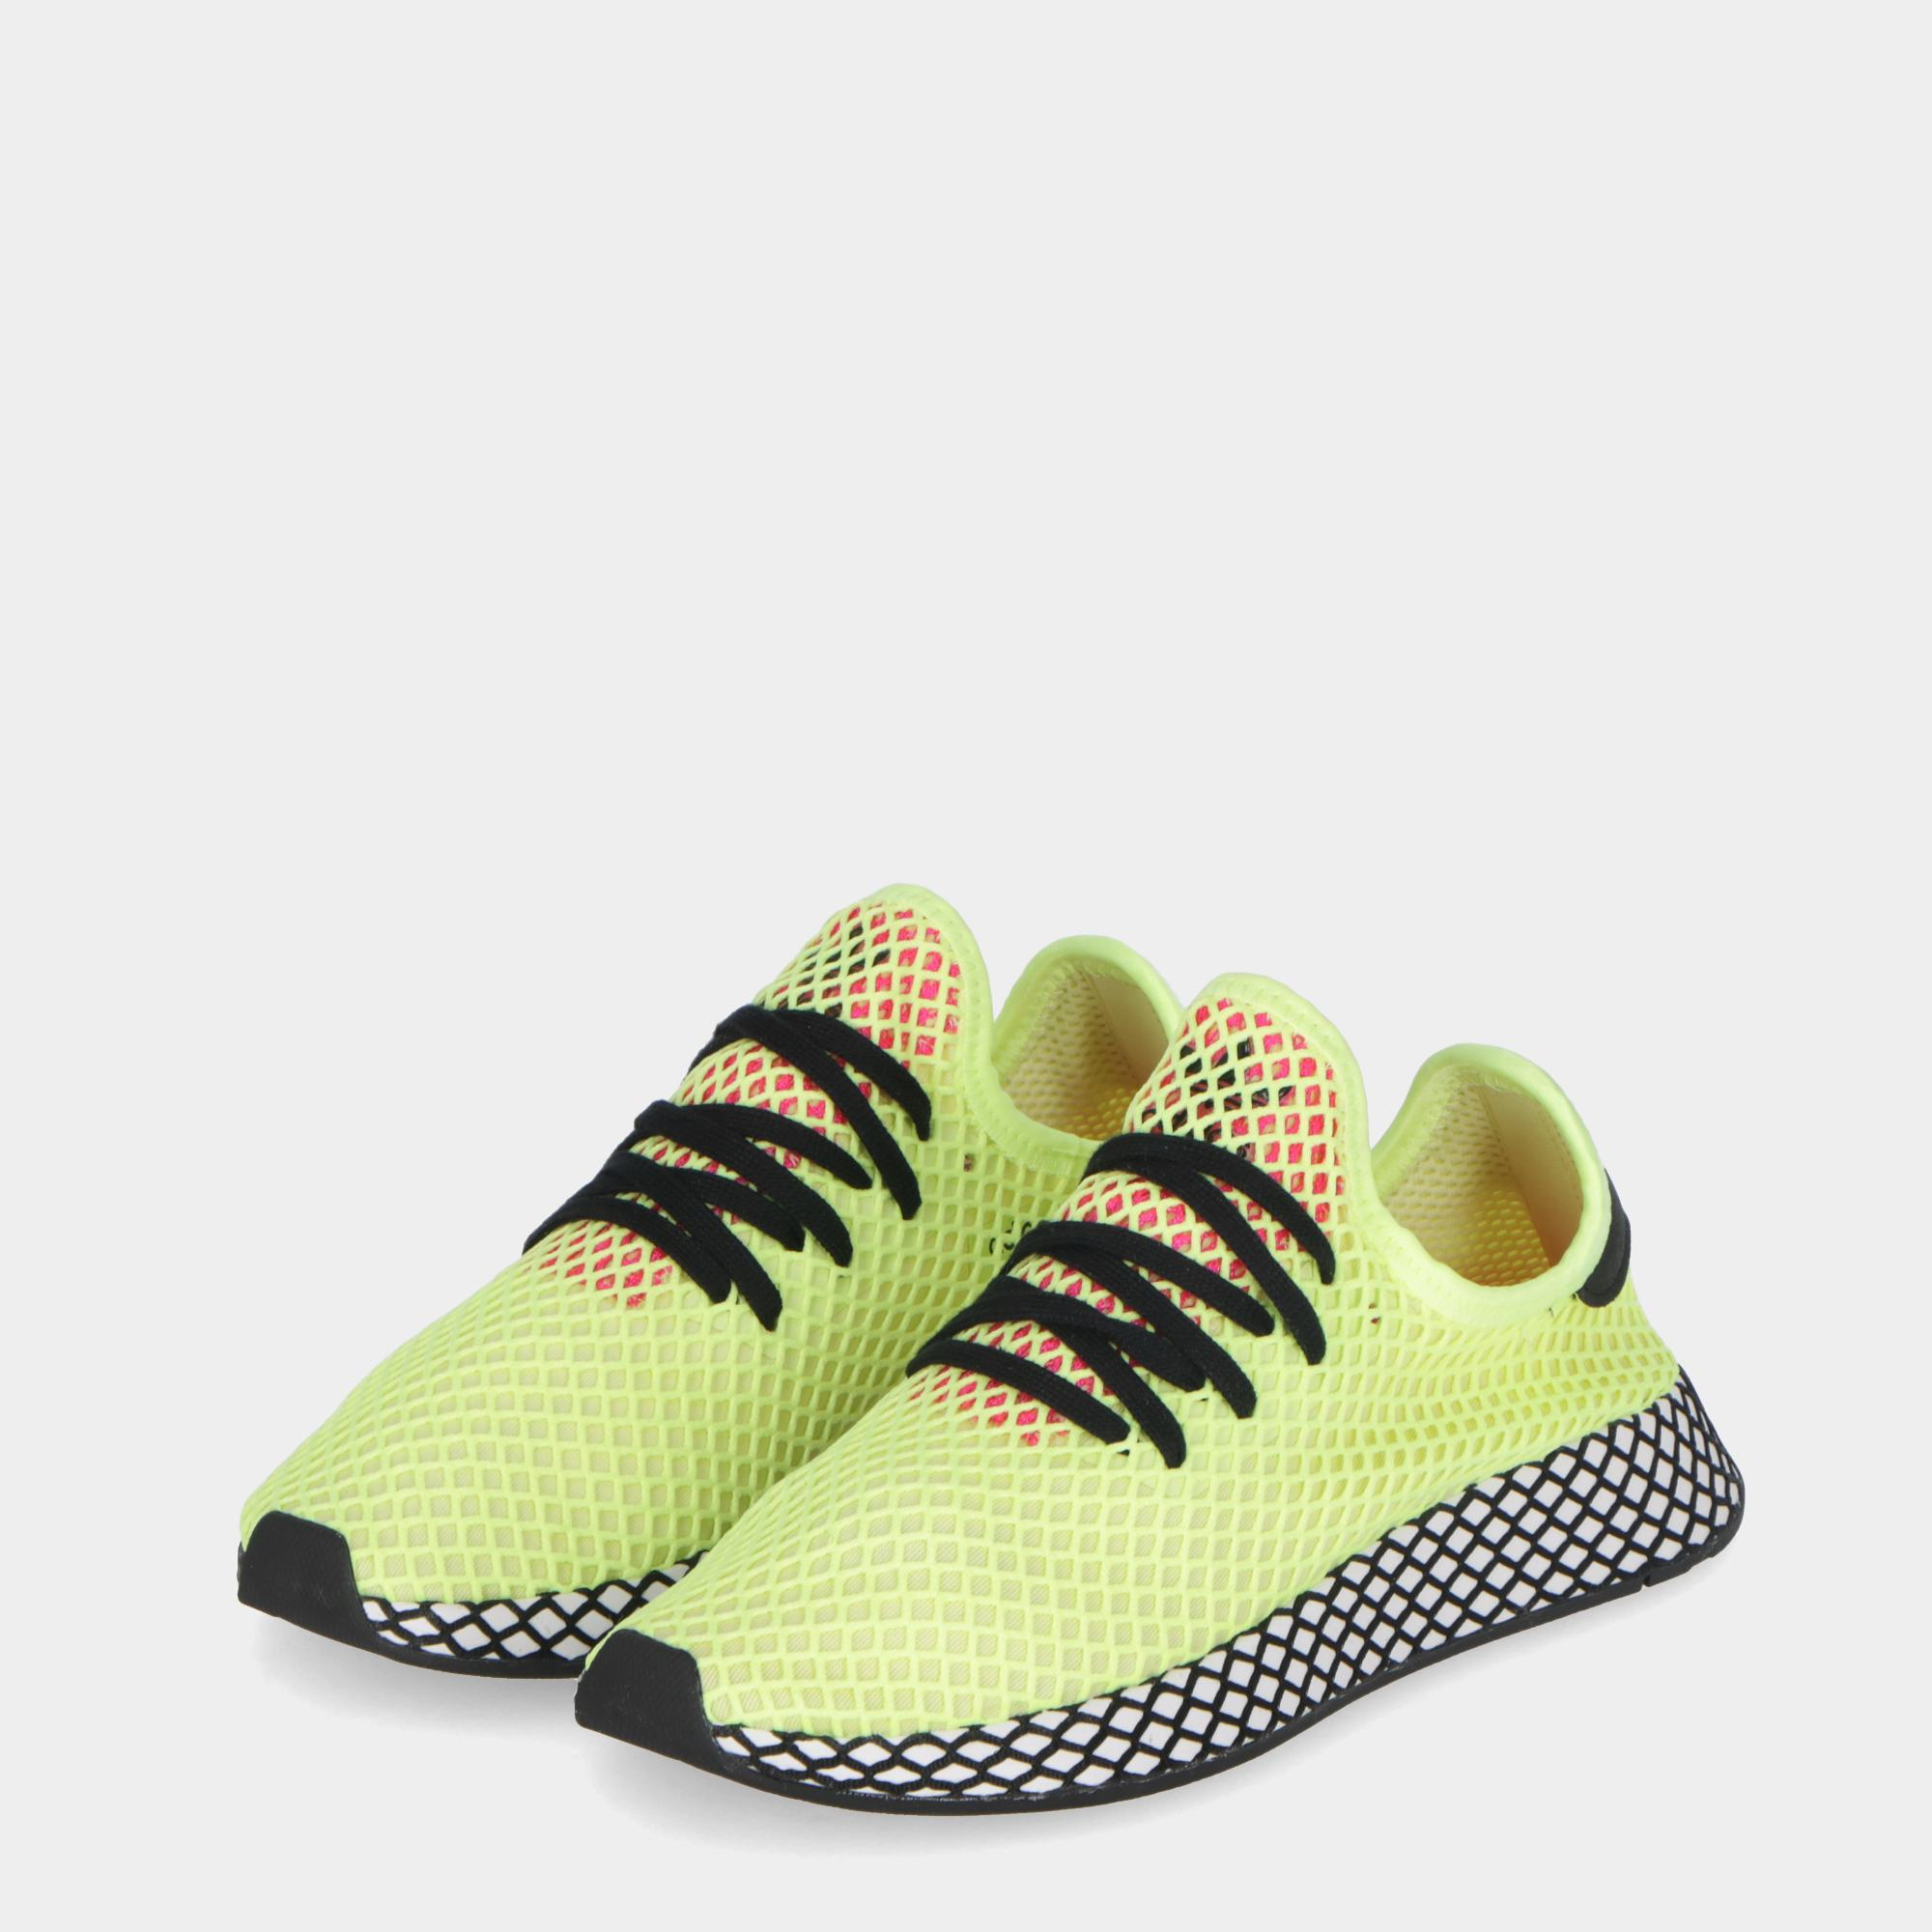 separation shoes 72028 5600e Adidas Deerupt Runner Yellow black pink